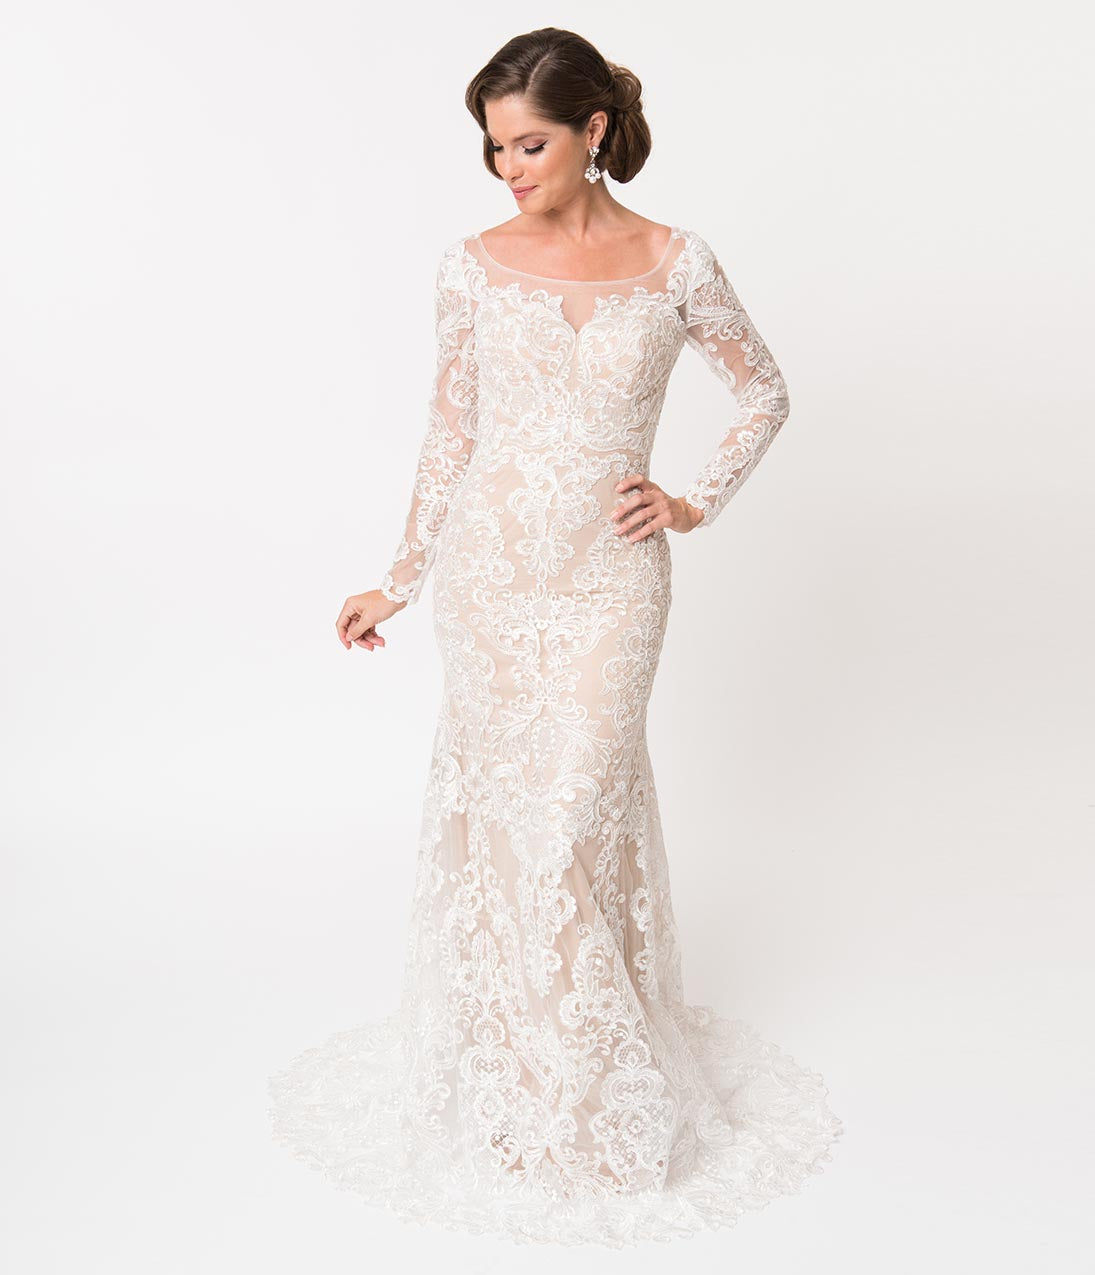 e079179ddc Ivory Lace   Beige Illusion Neckline Long Sleeved Fitted Bridal Gown